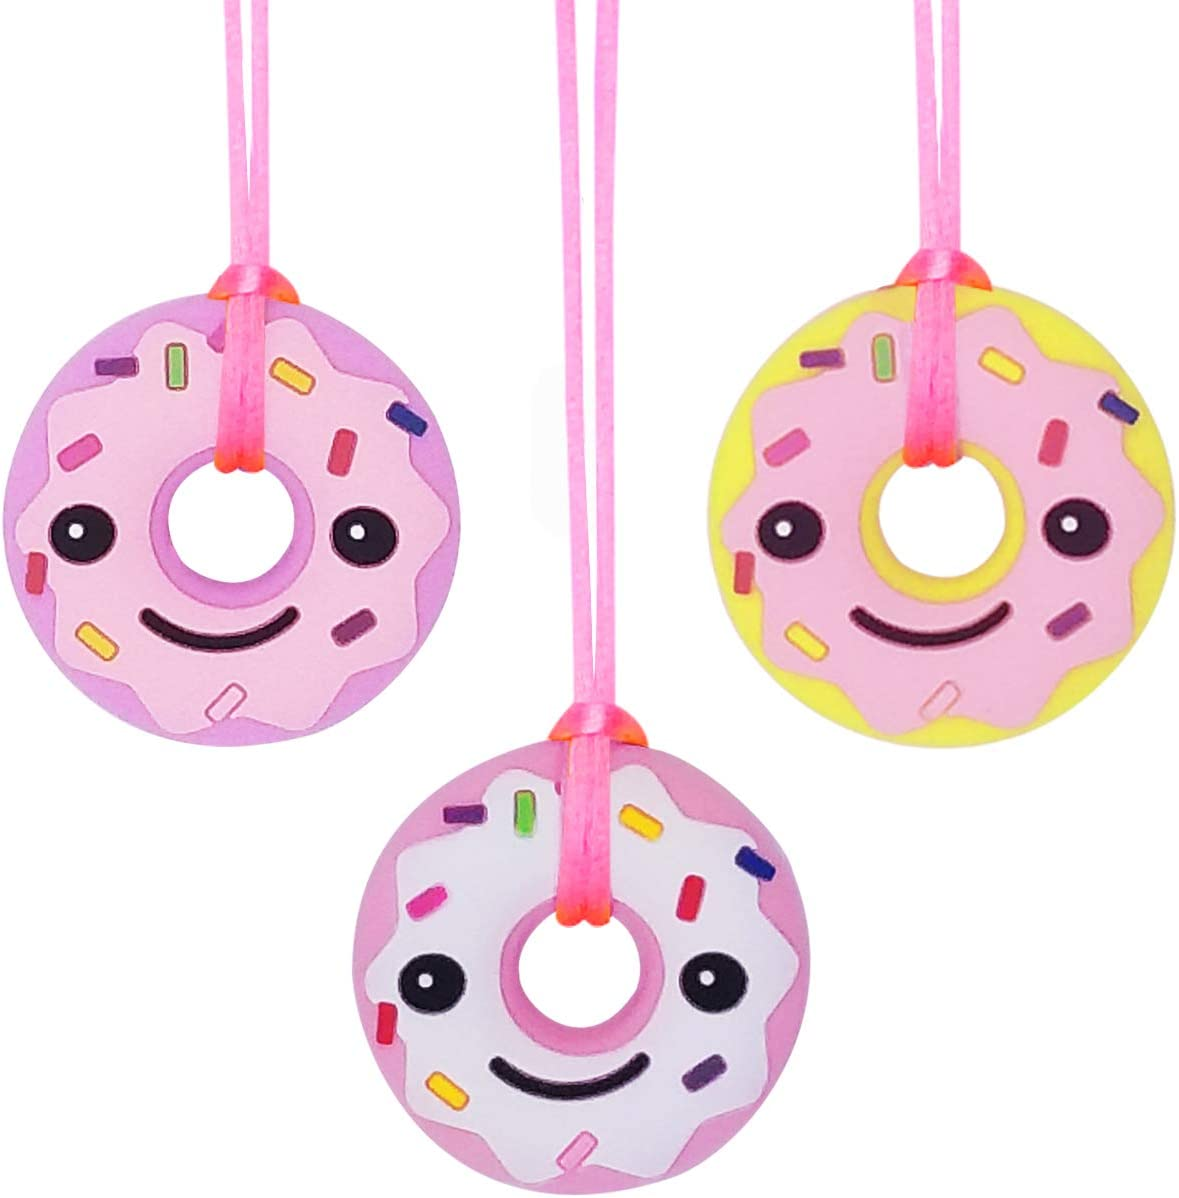 3 Pack Designed for Autism Sensory Chew Necklace for Kids BPA Free /& Durable Girls Oral Motor Girls ADHD - Oral Sensory Chew Toys Teether Necklace Chewing Necklace Teething Necklace